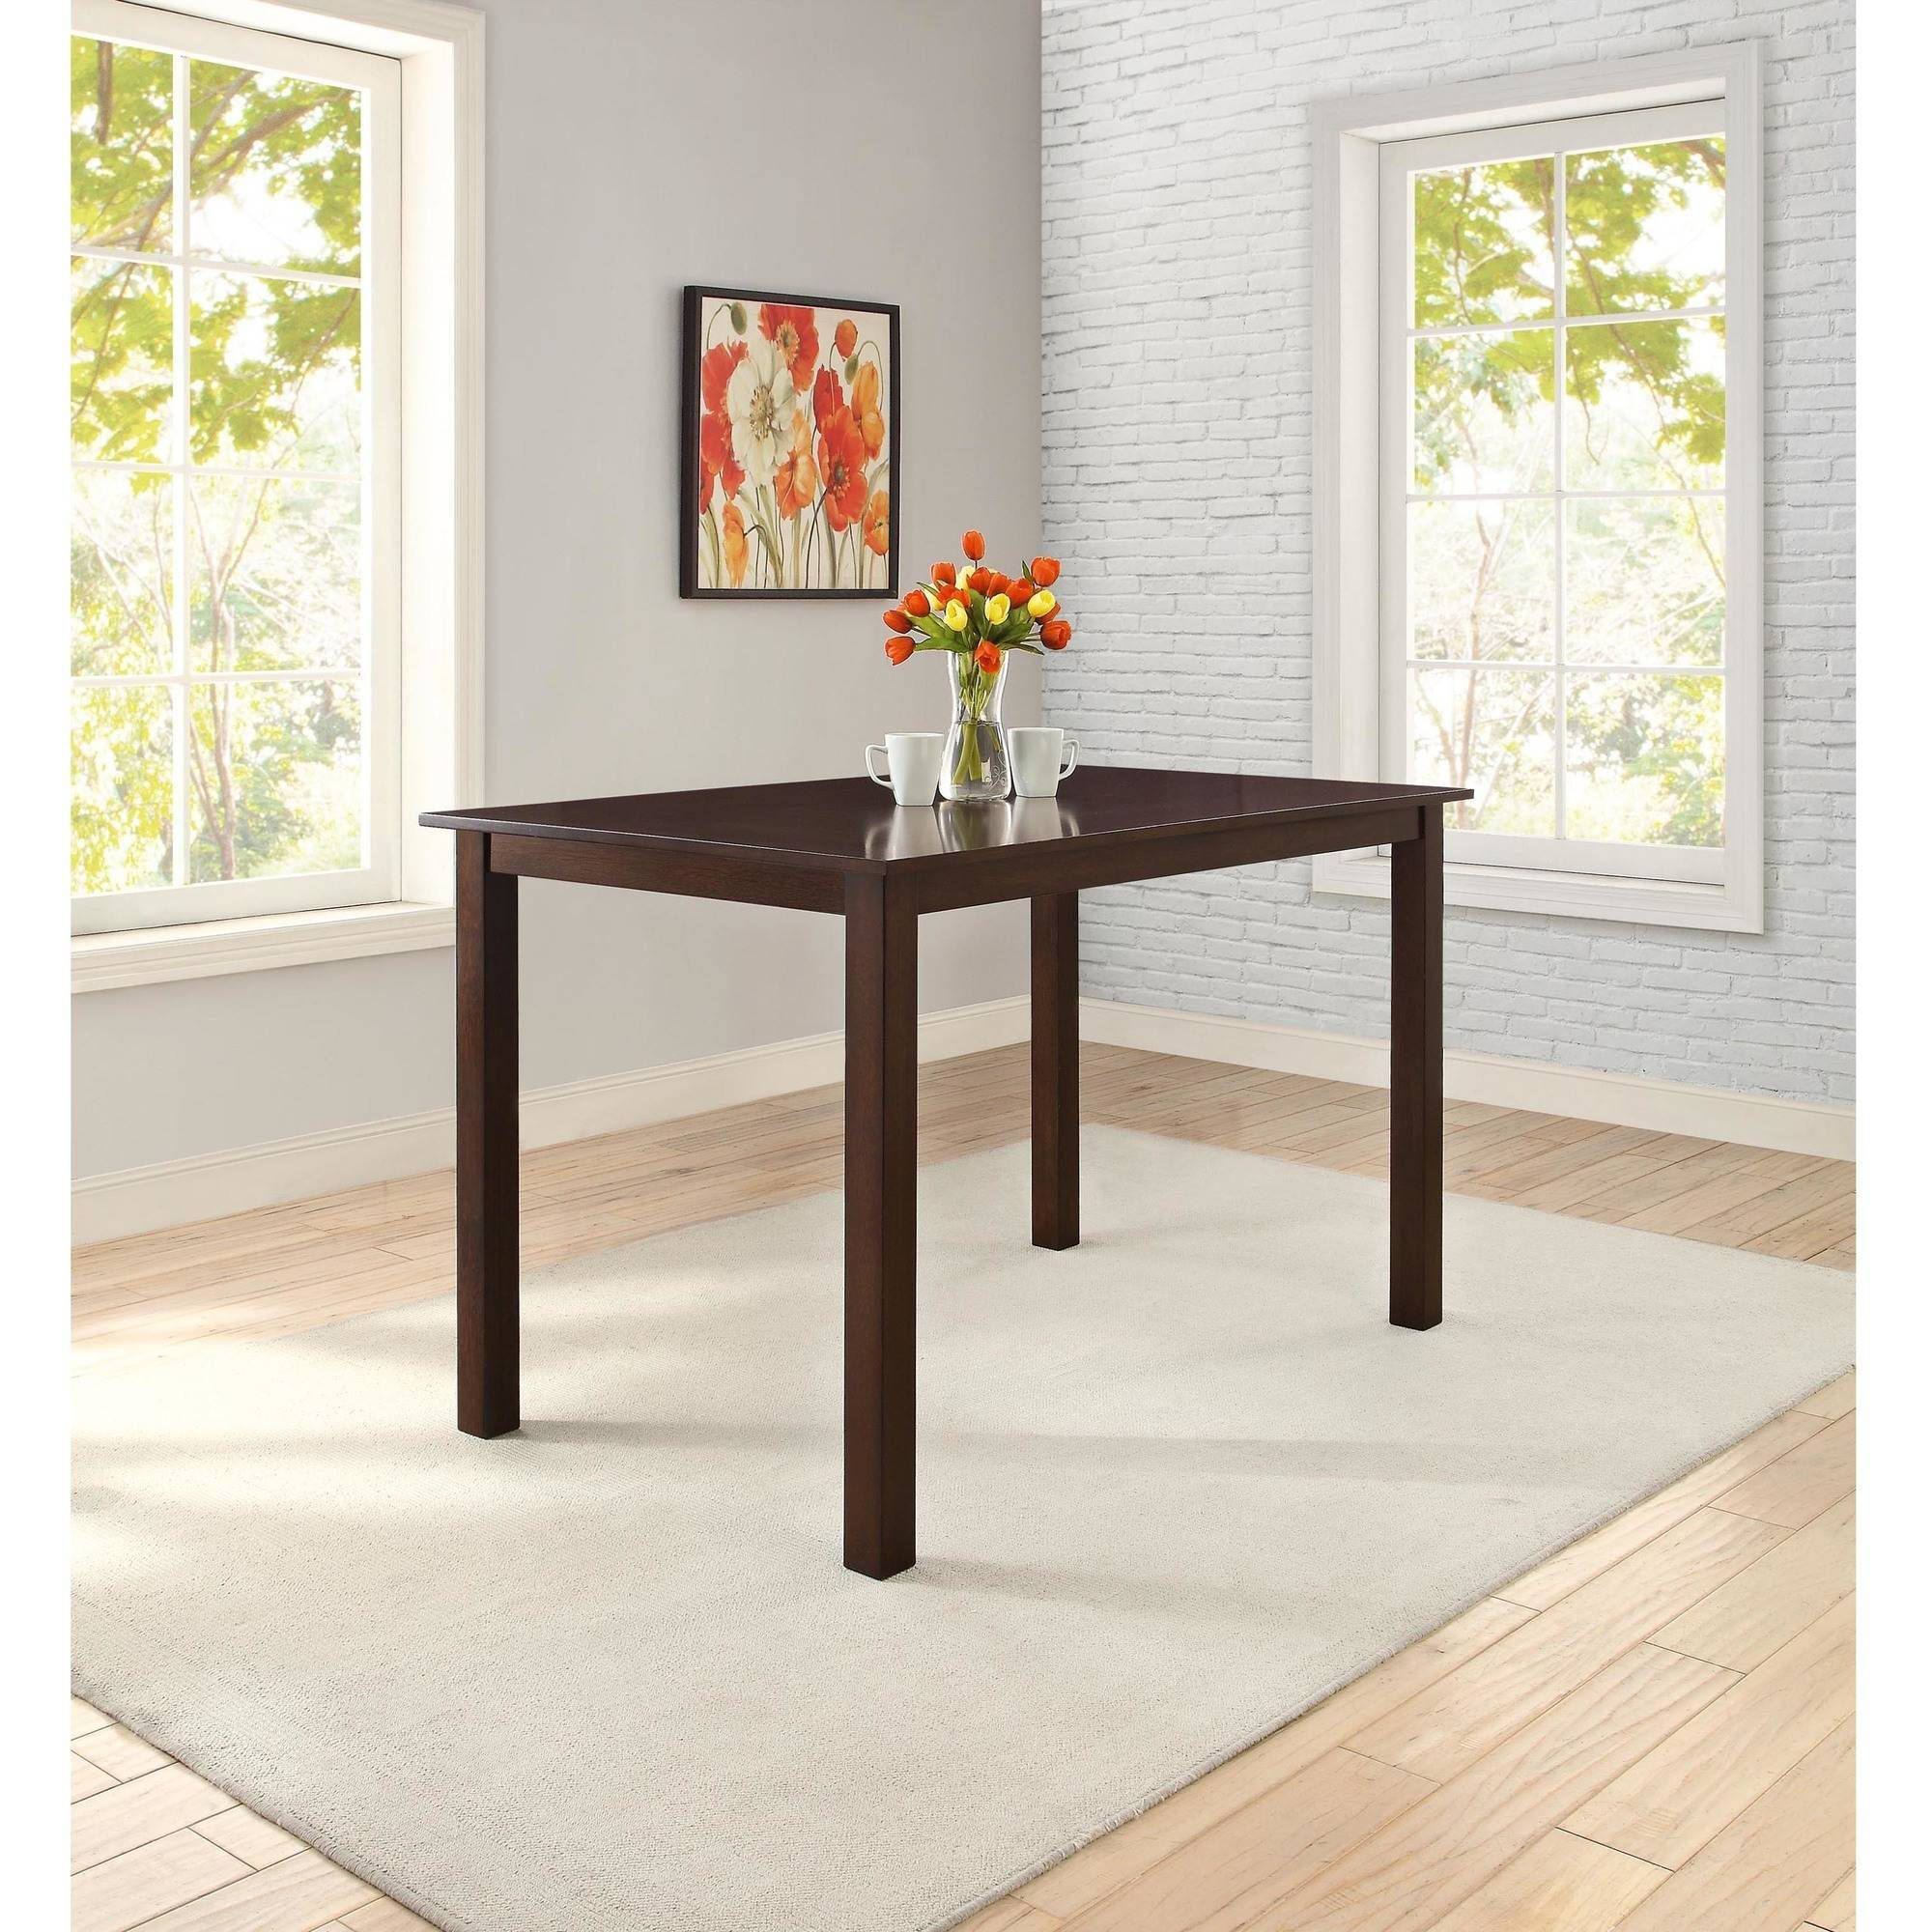 Better homes and gardens bankston counter height dining table mocha room better homes and gardens bankston counter height dining table dzzzfo